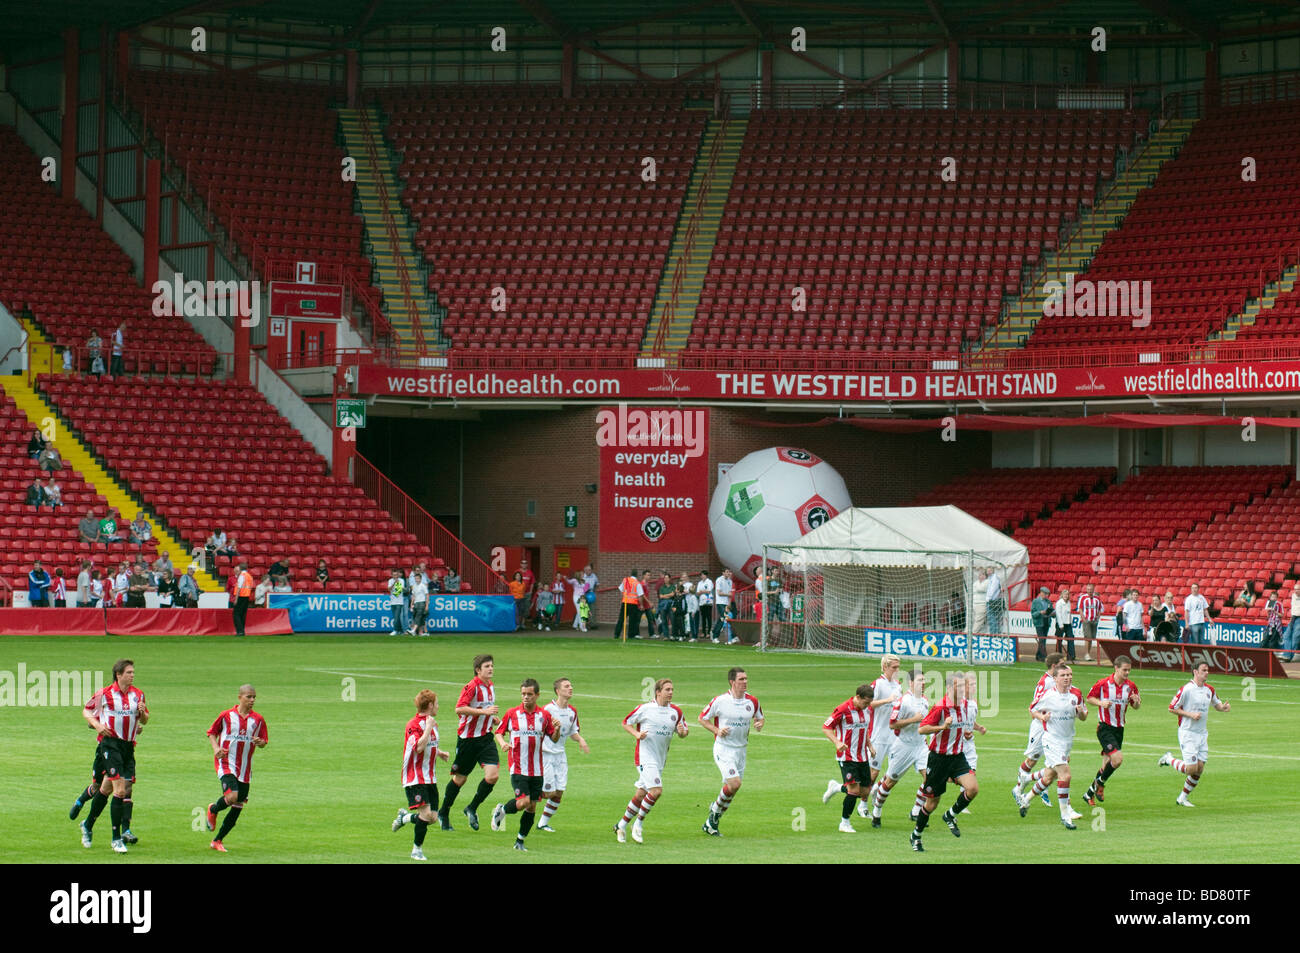 'Sheffield United' Blades football players in training on the pitch inside their stadium - Stock Image